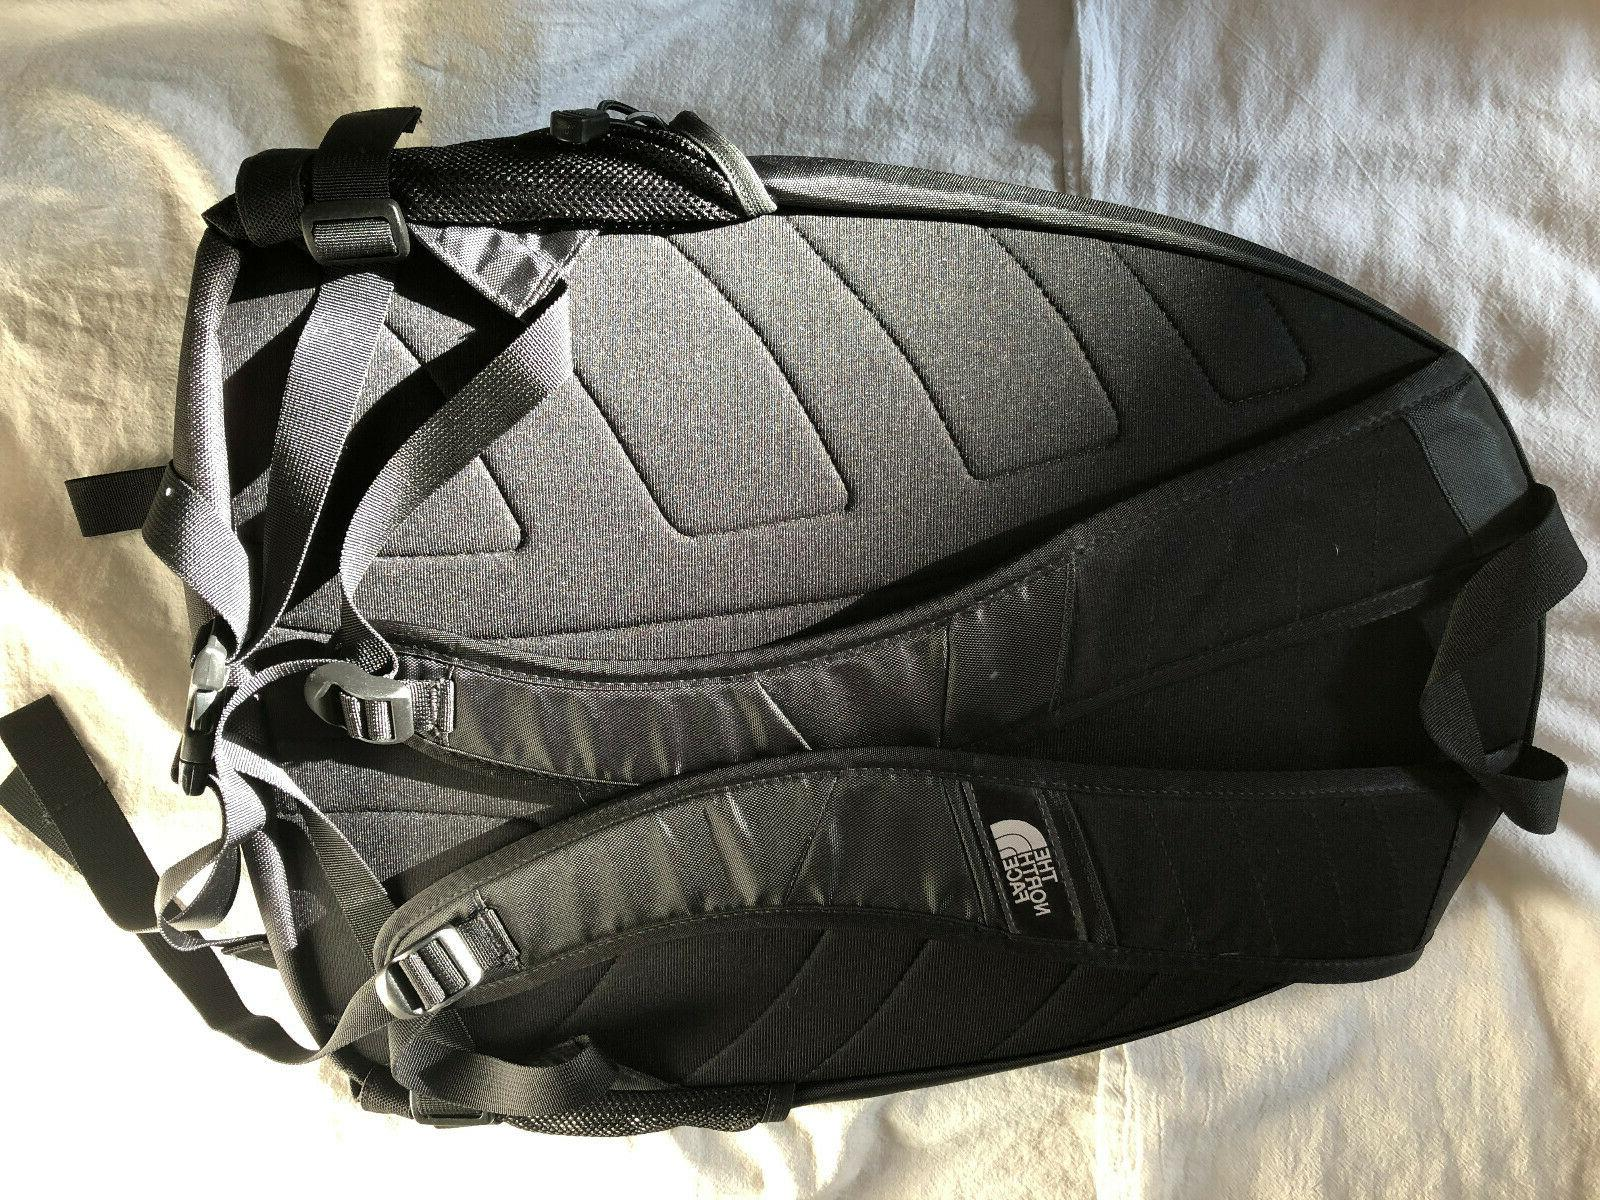 The North Face Backpack School/Hiking Style - But Not